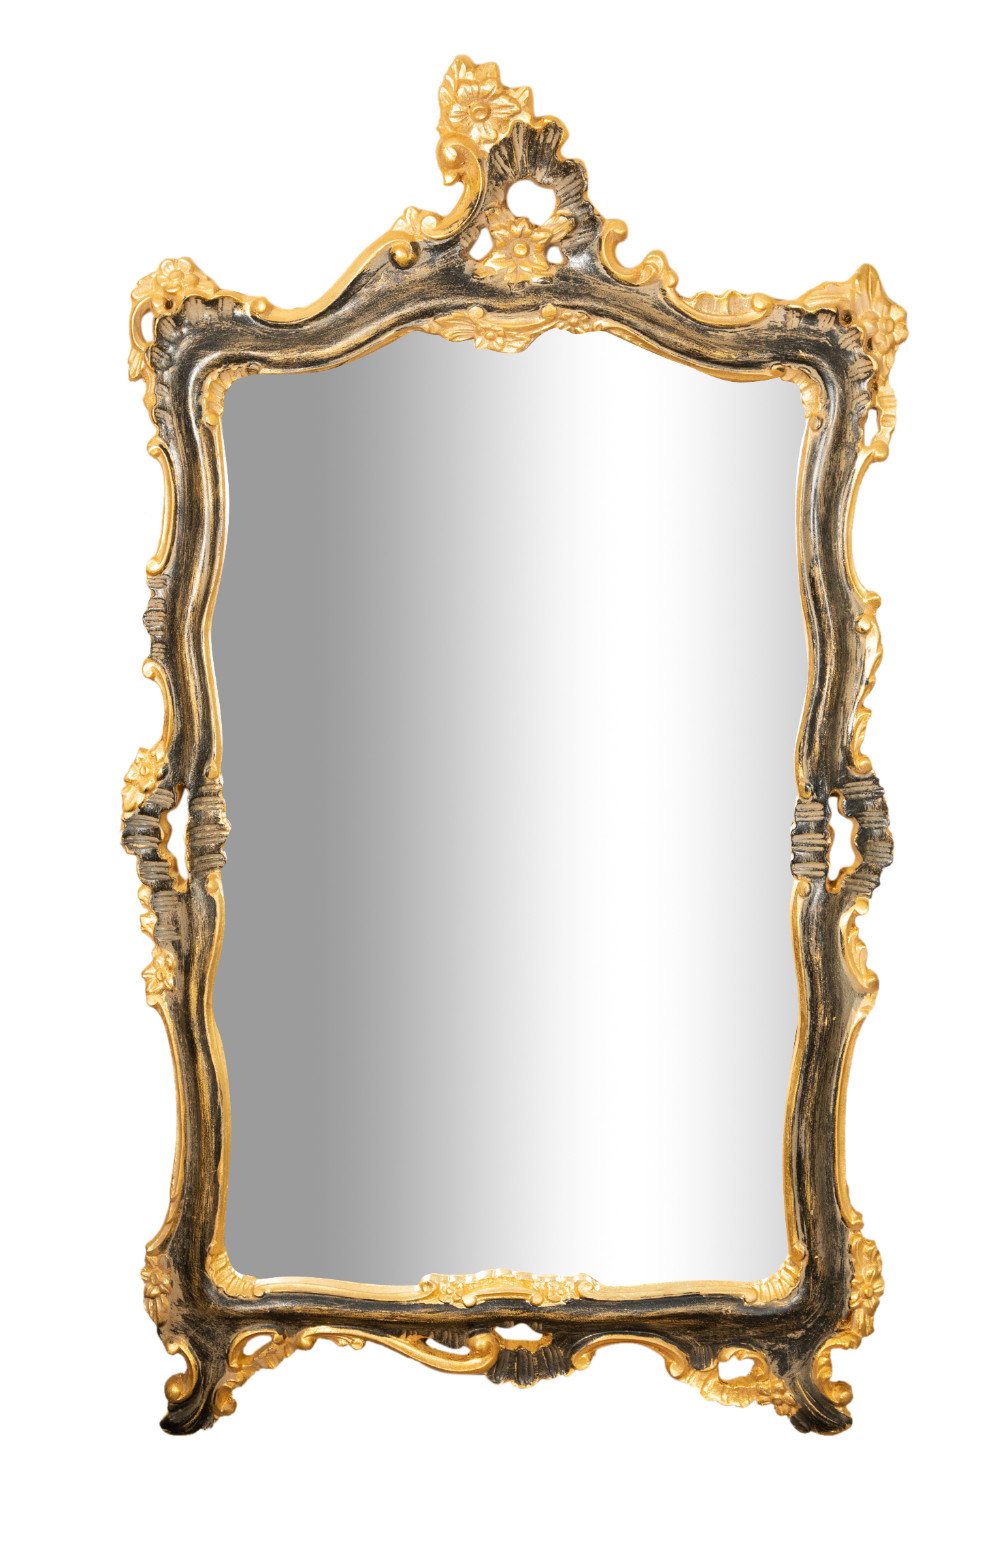 Biscottini International Art Trading gold and black finished wooden frame wall mirror made in